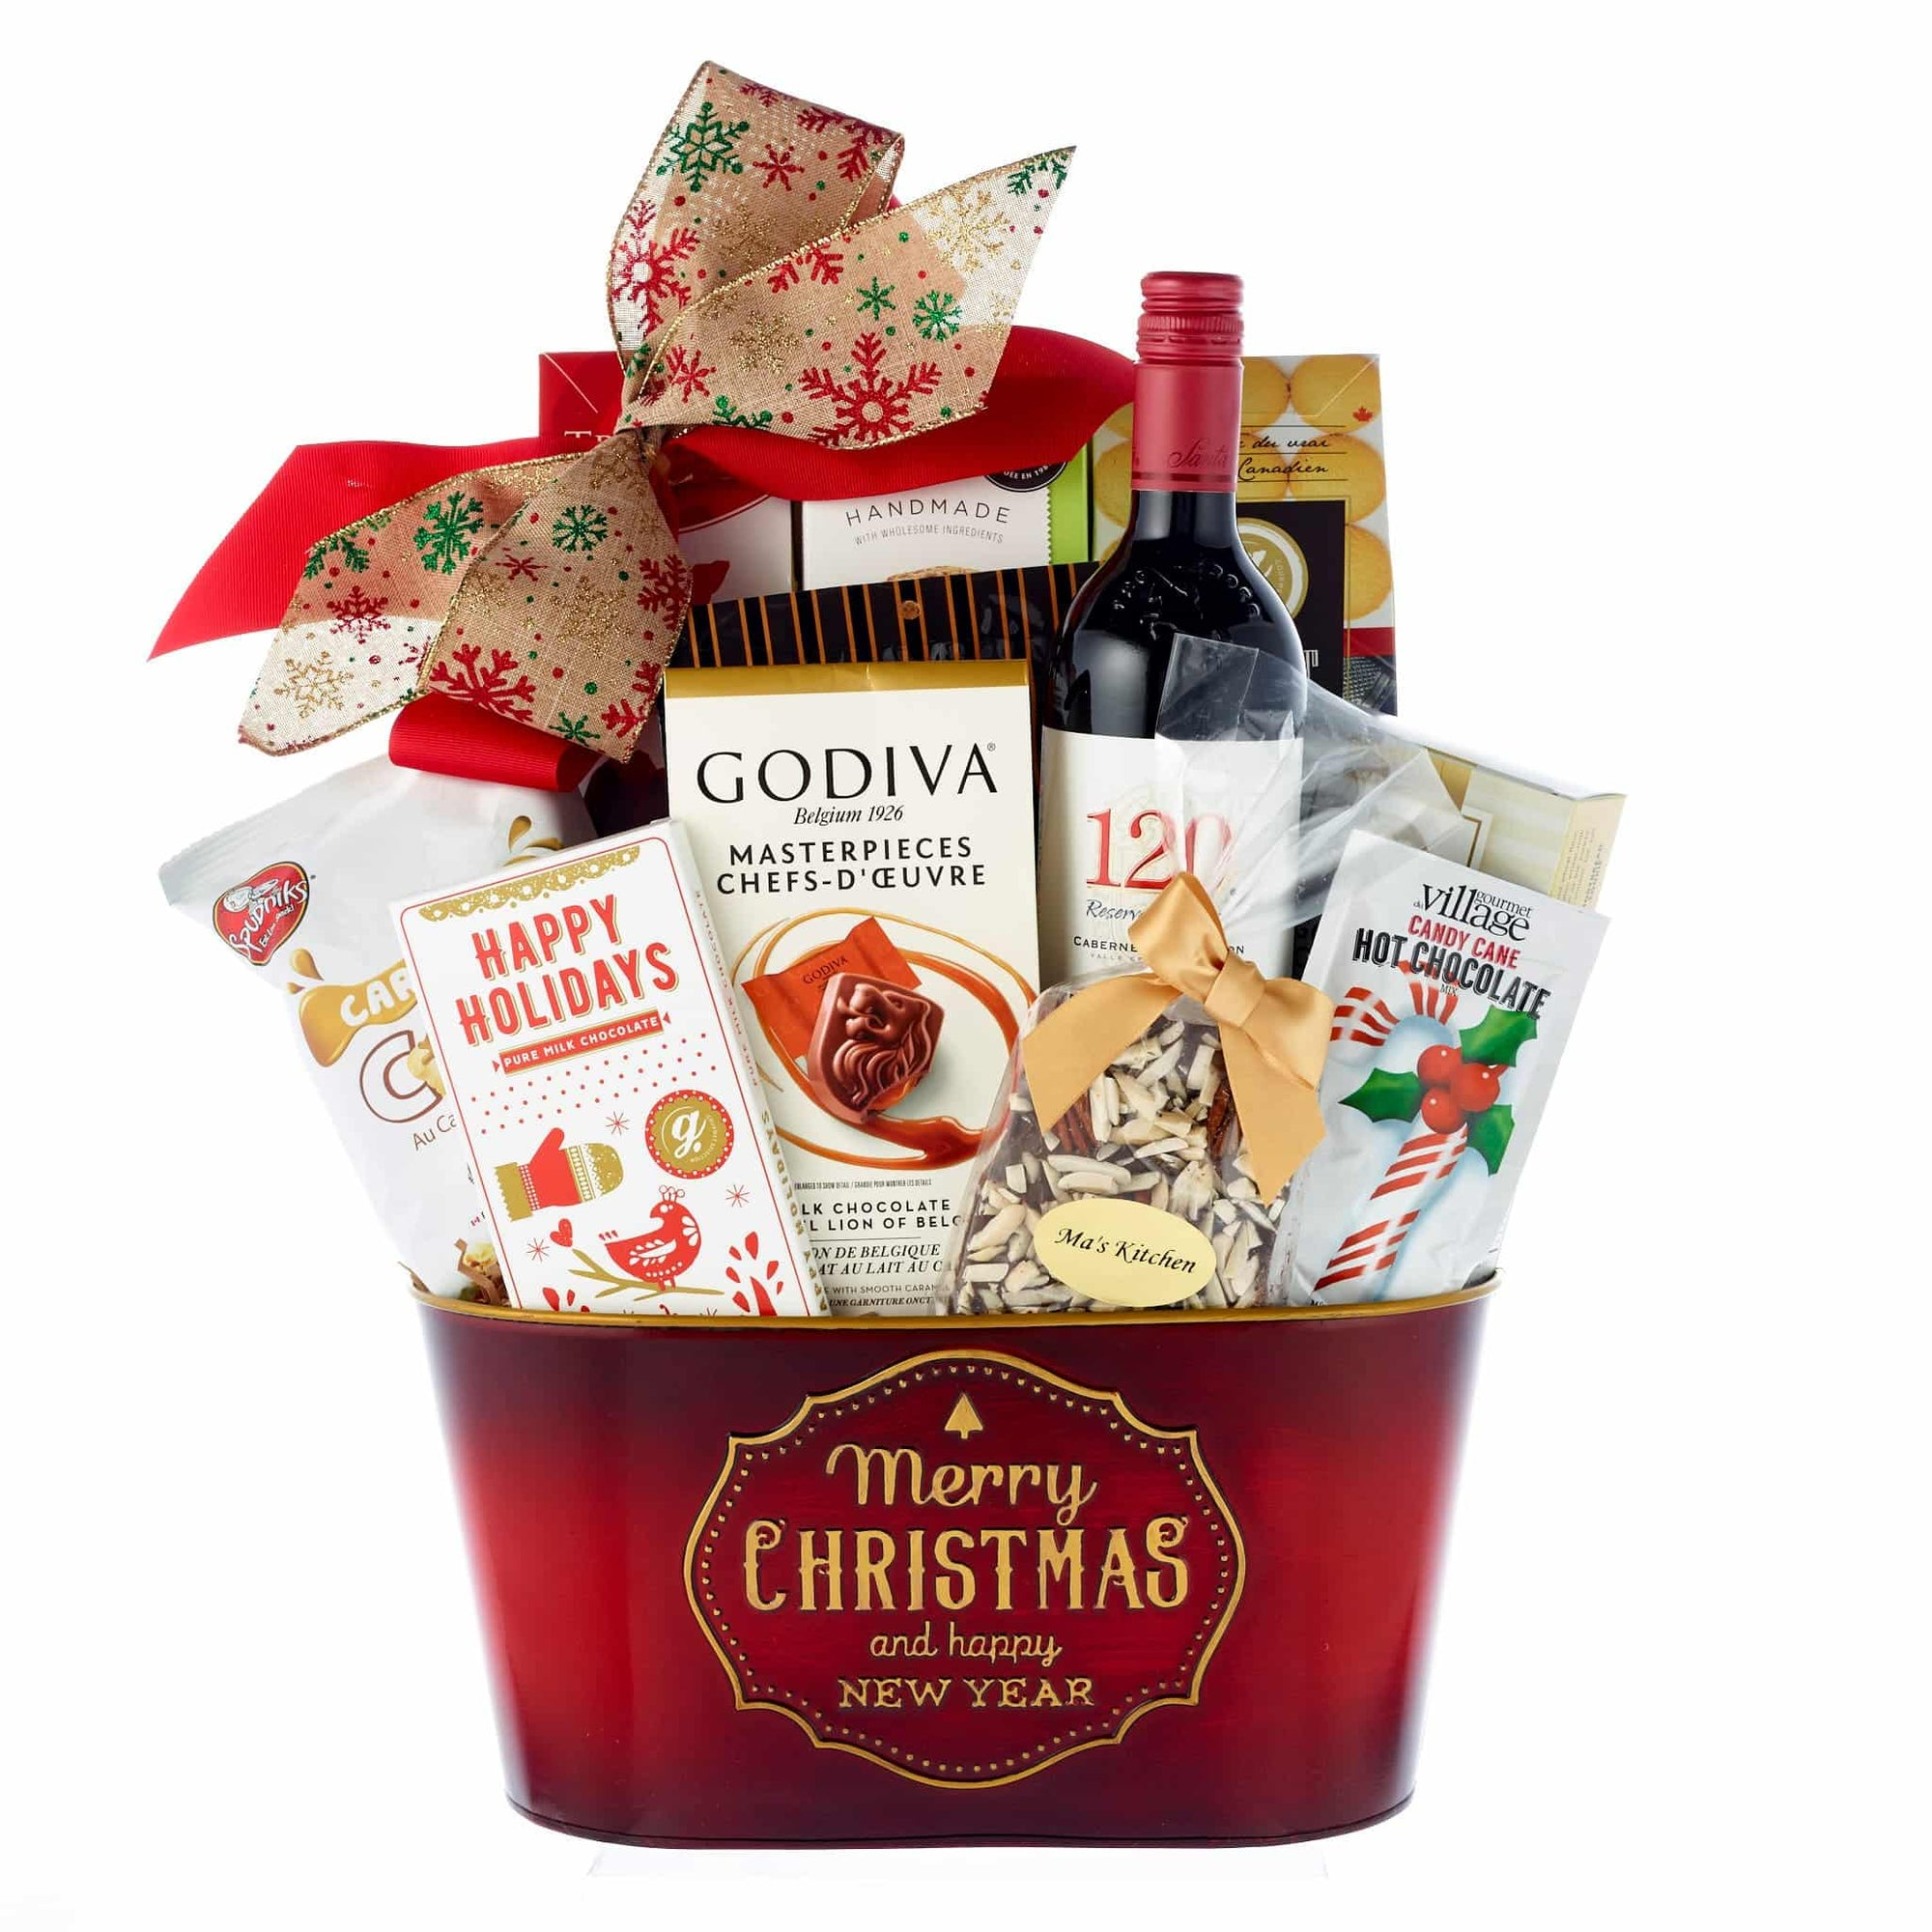 Merry Christmas red wine gift hamper delivery Toronto